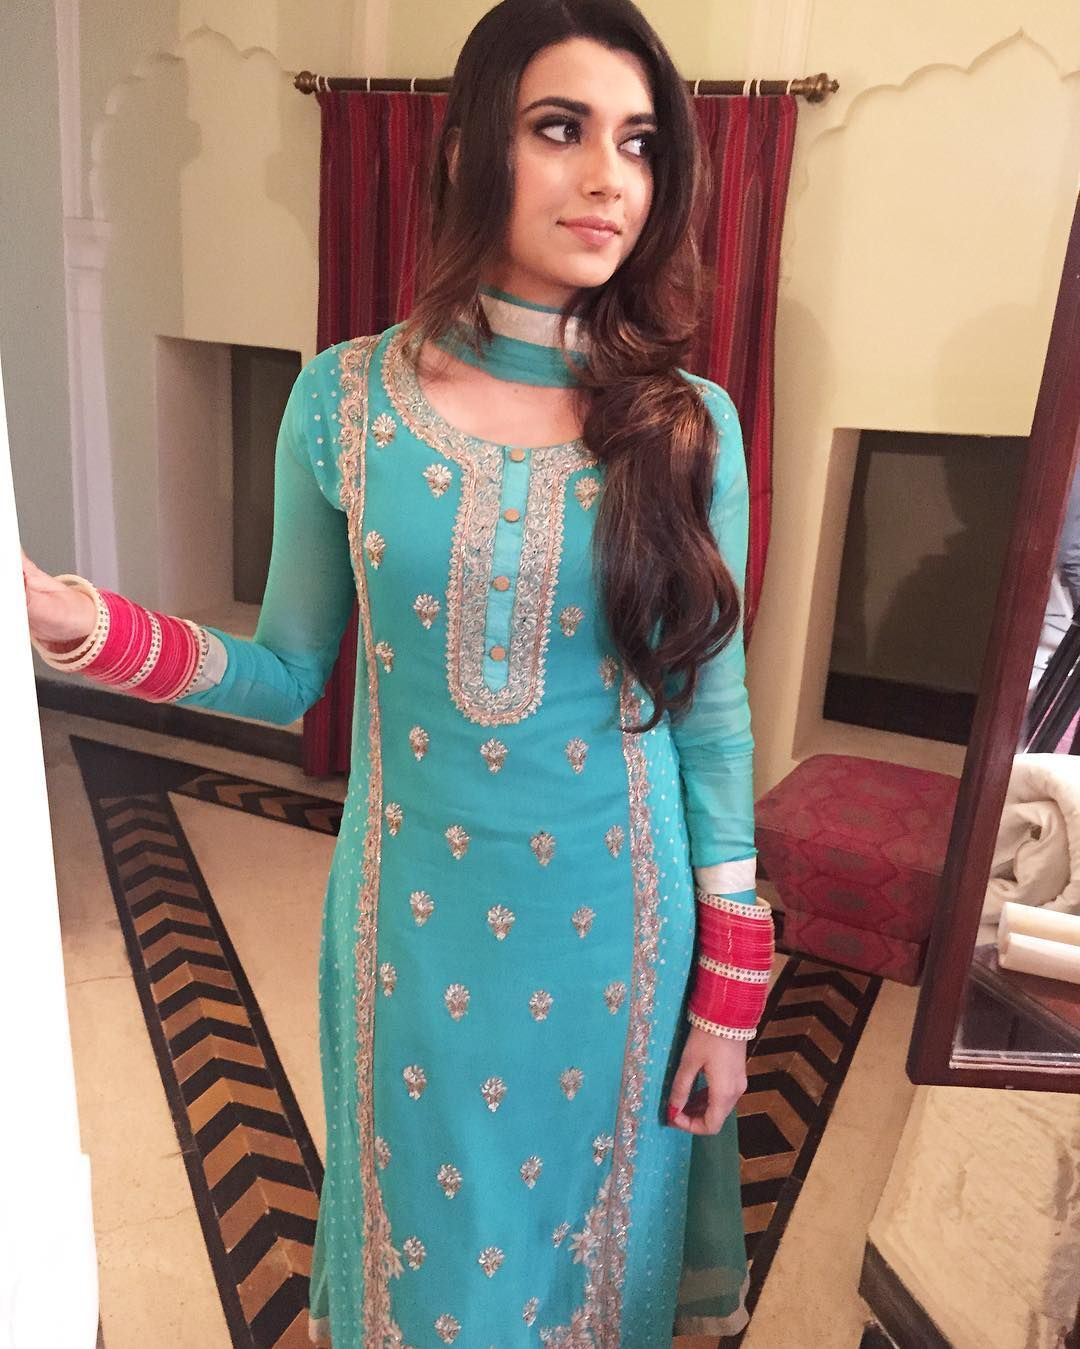 Pin by Aareen on Punjabi Suits and Acessories | Pinterest ...